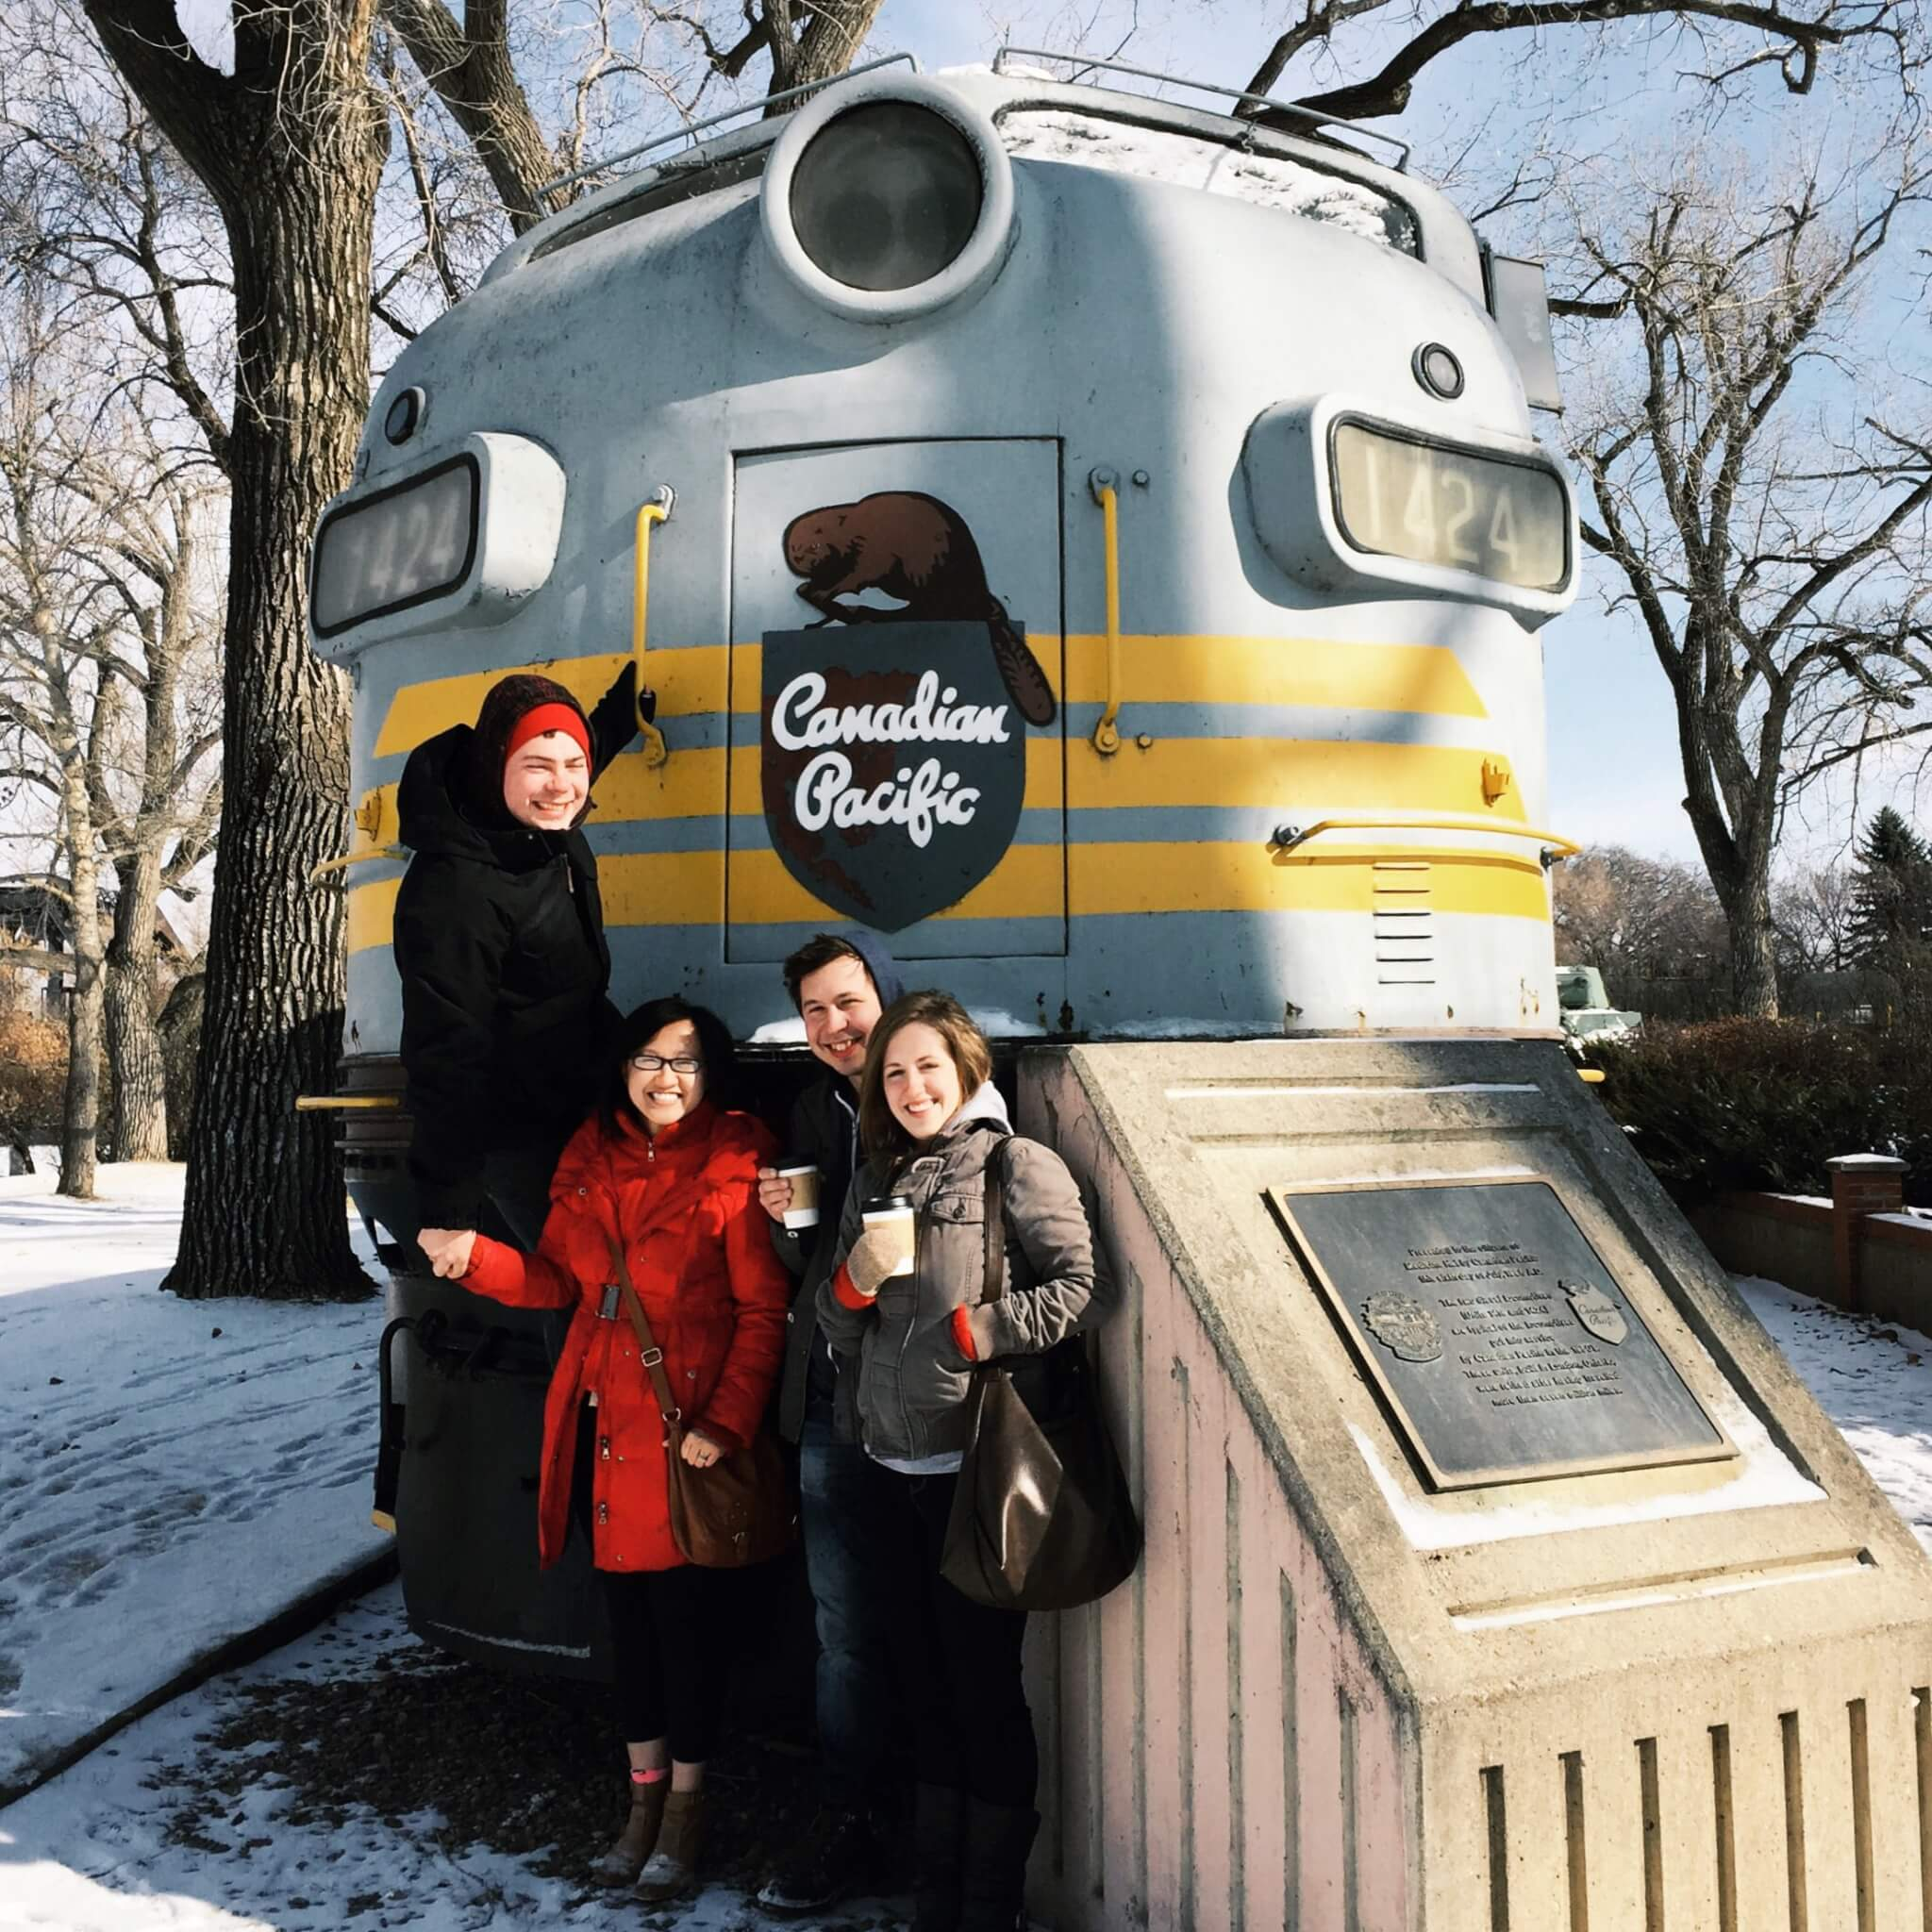 The Canadian Pacific Railway has a big presence in Medicine Hat!